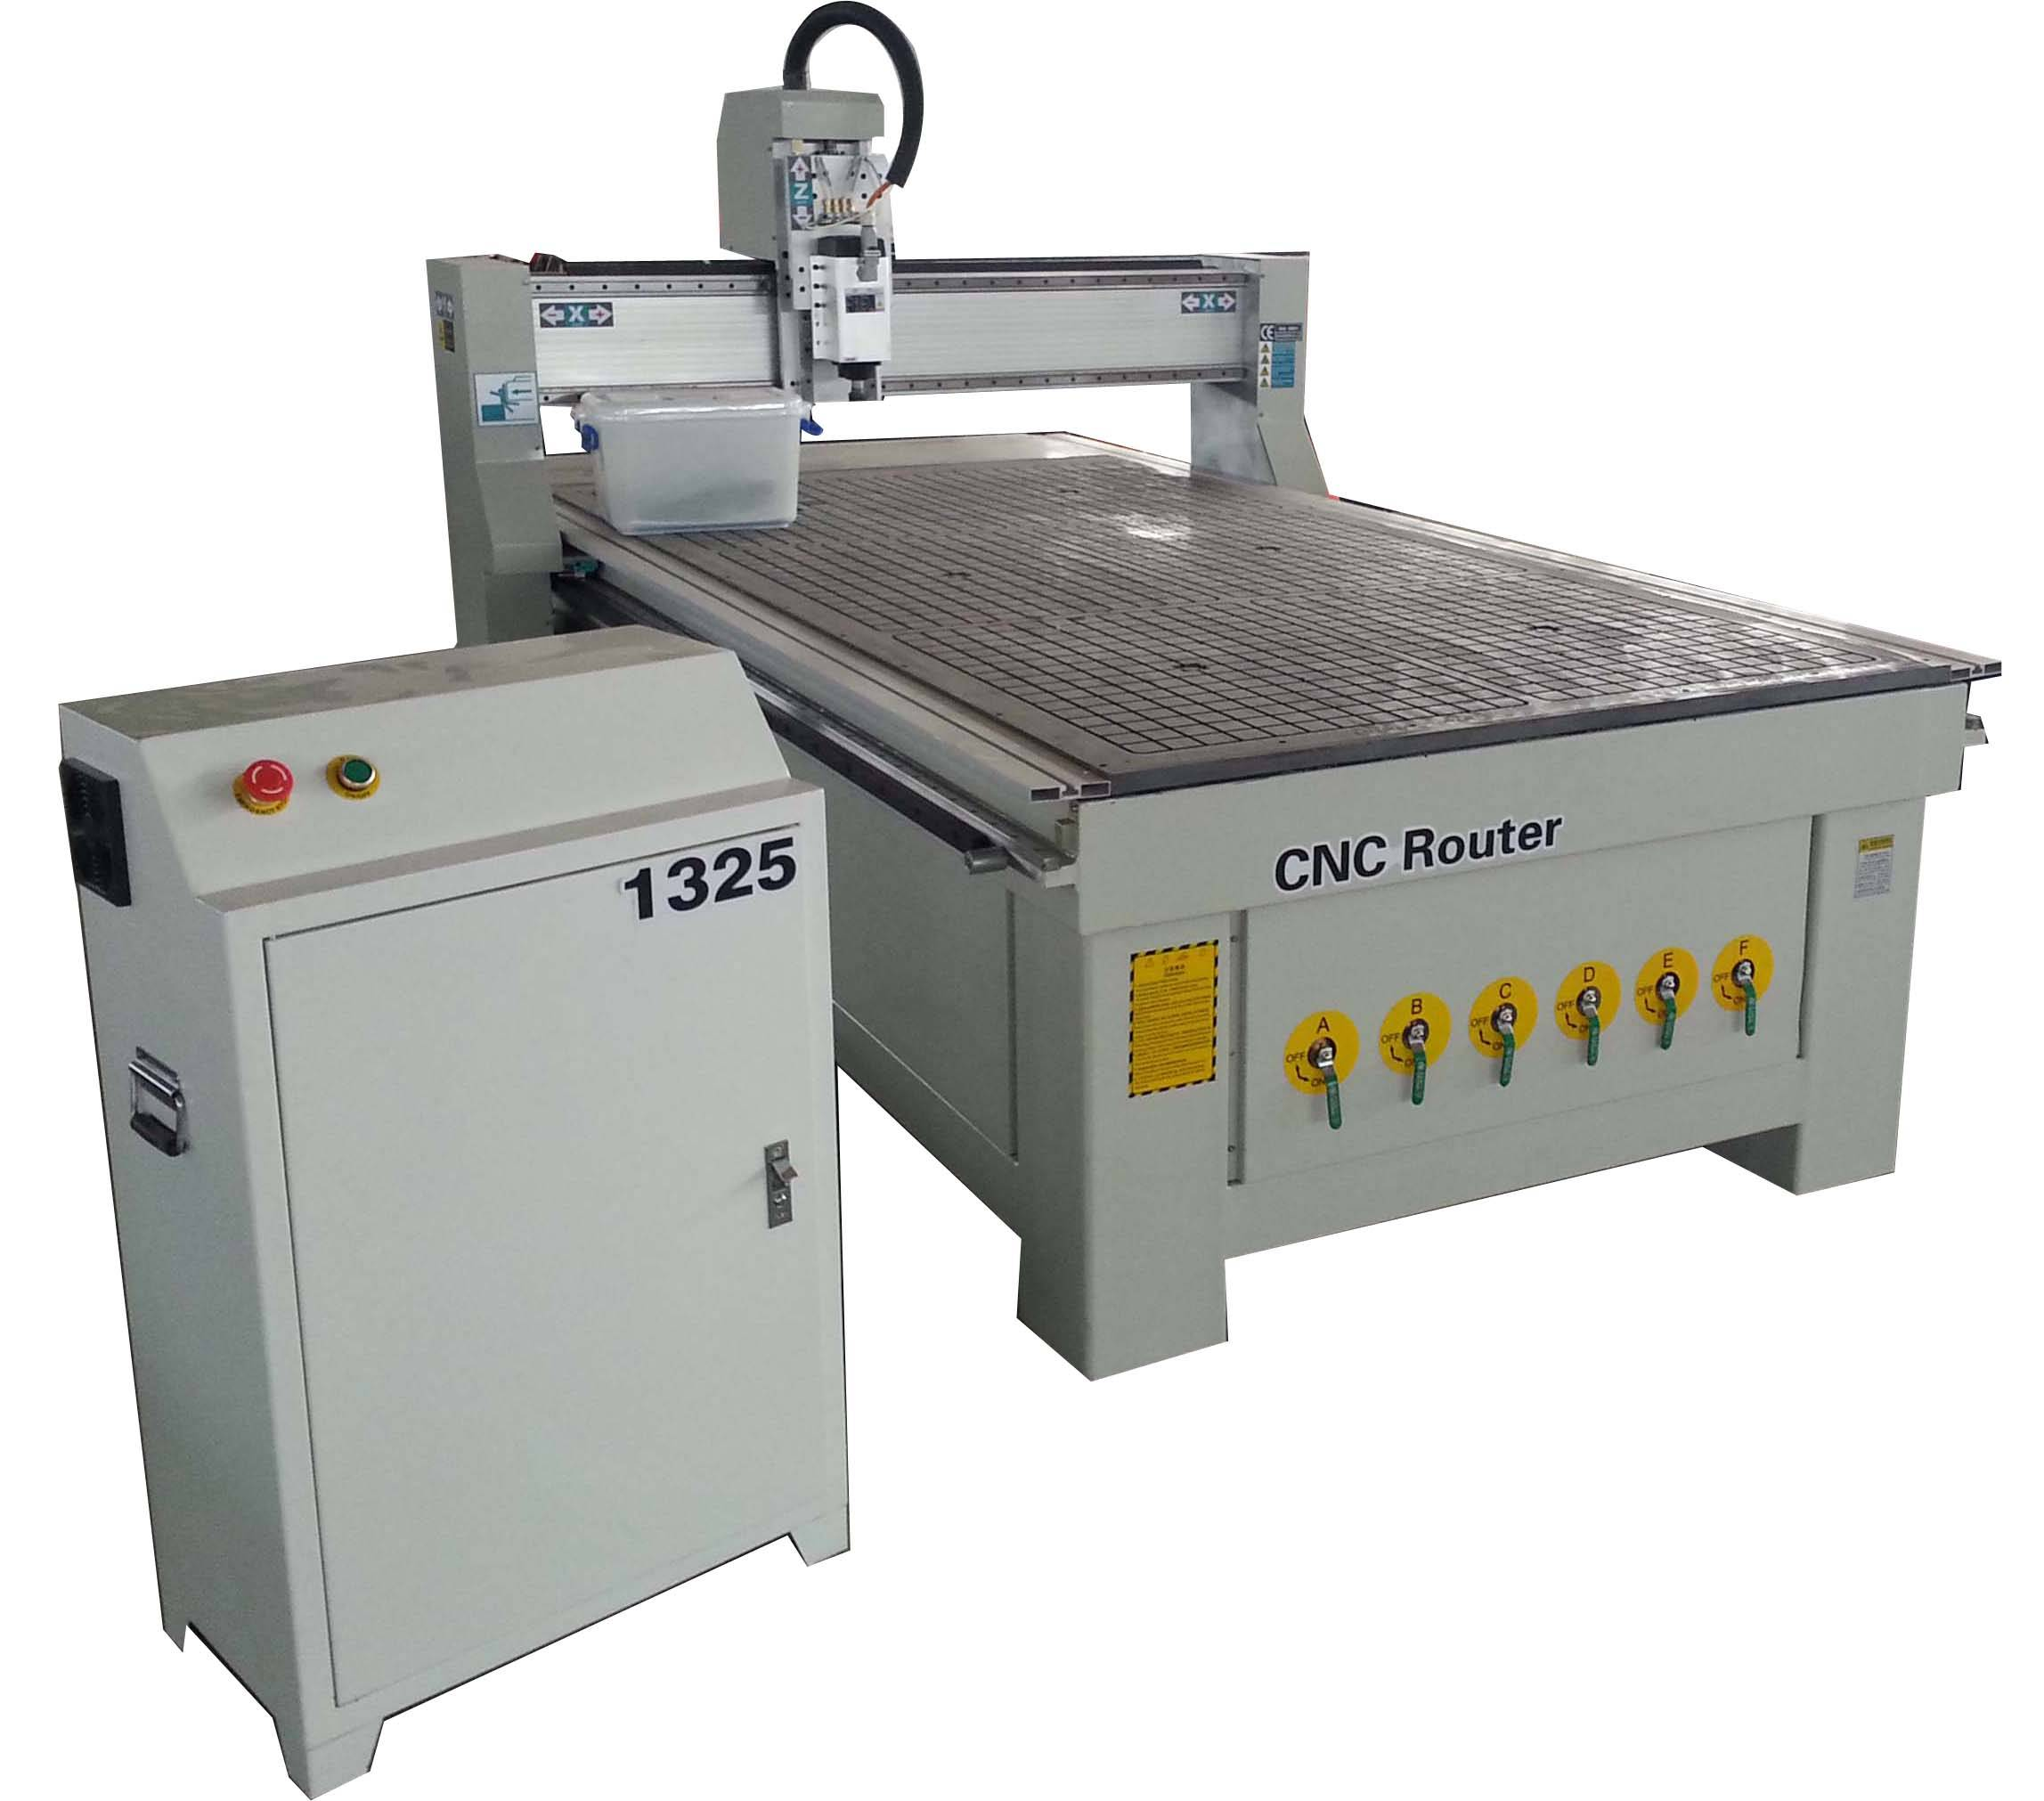 China factory CNC router DKR-1325 5.5kw constant power spindle with vacuum table and dust collector